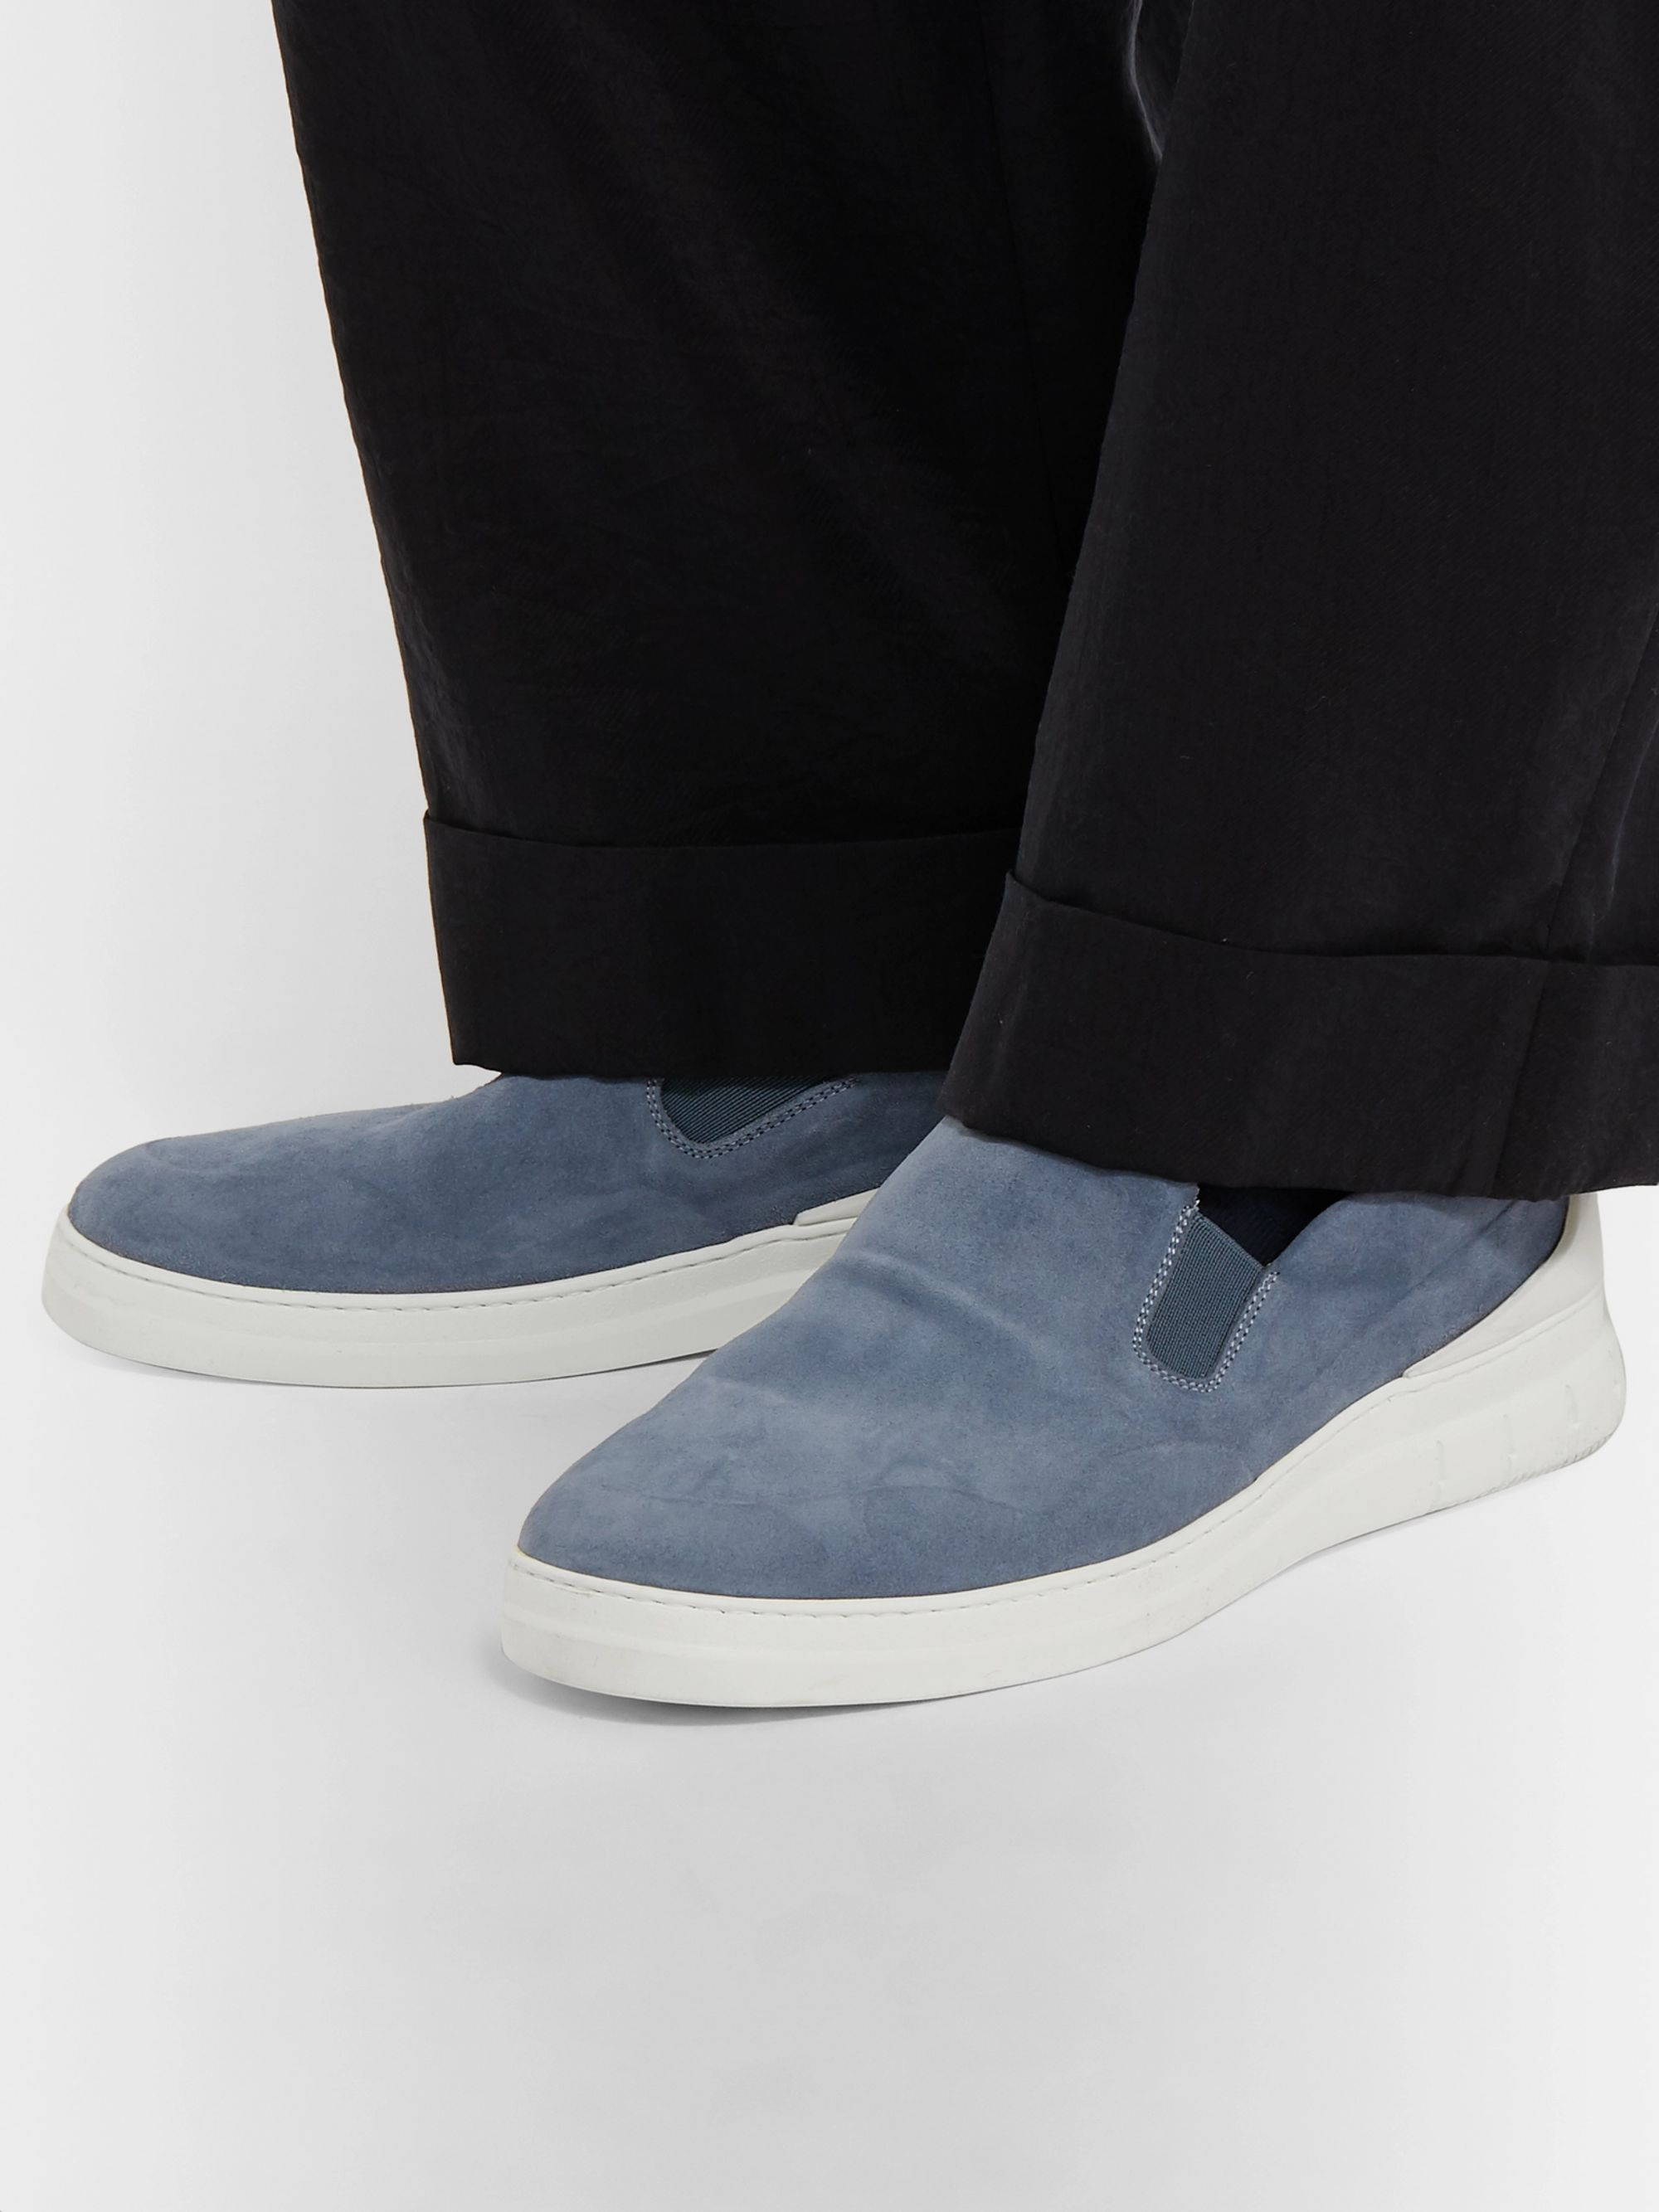 Dunhill Radial Spoiler Suede Slip-On Sneakers